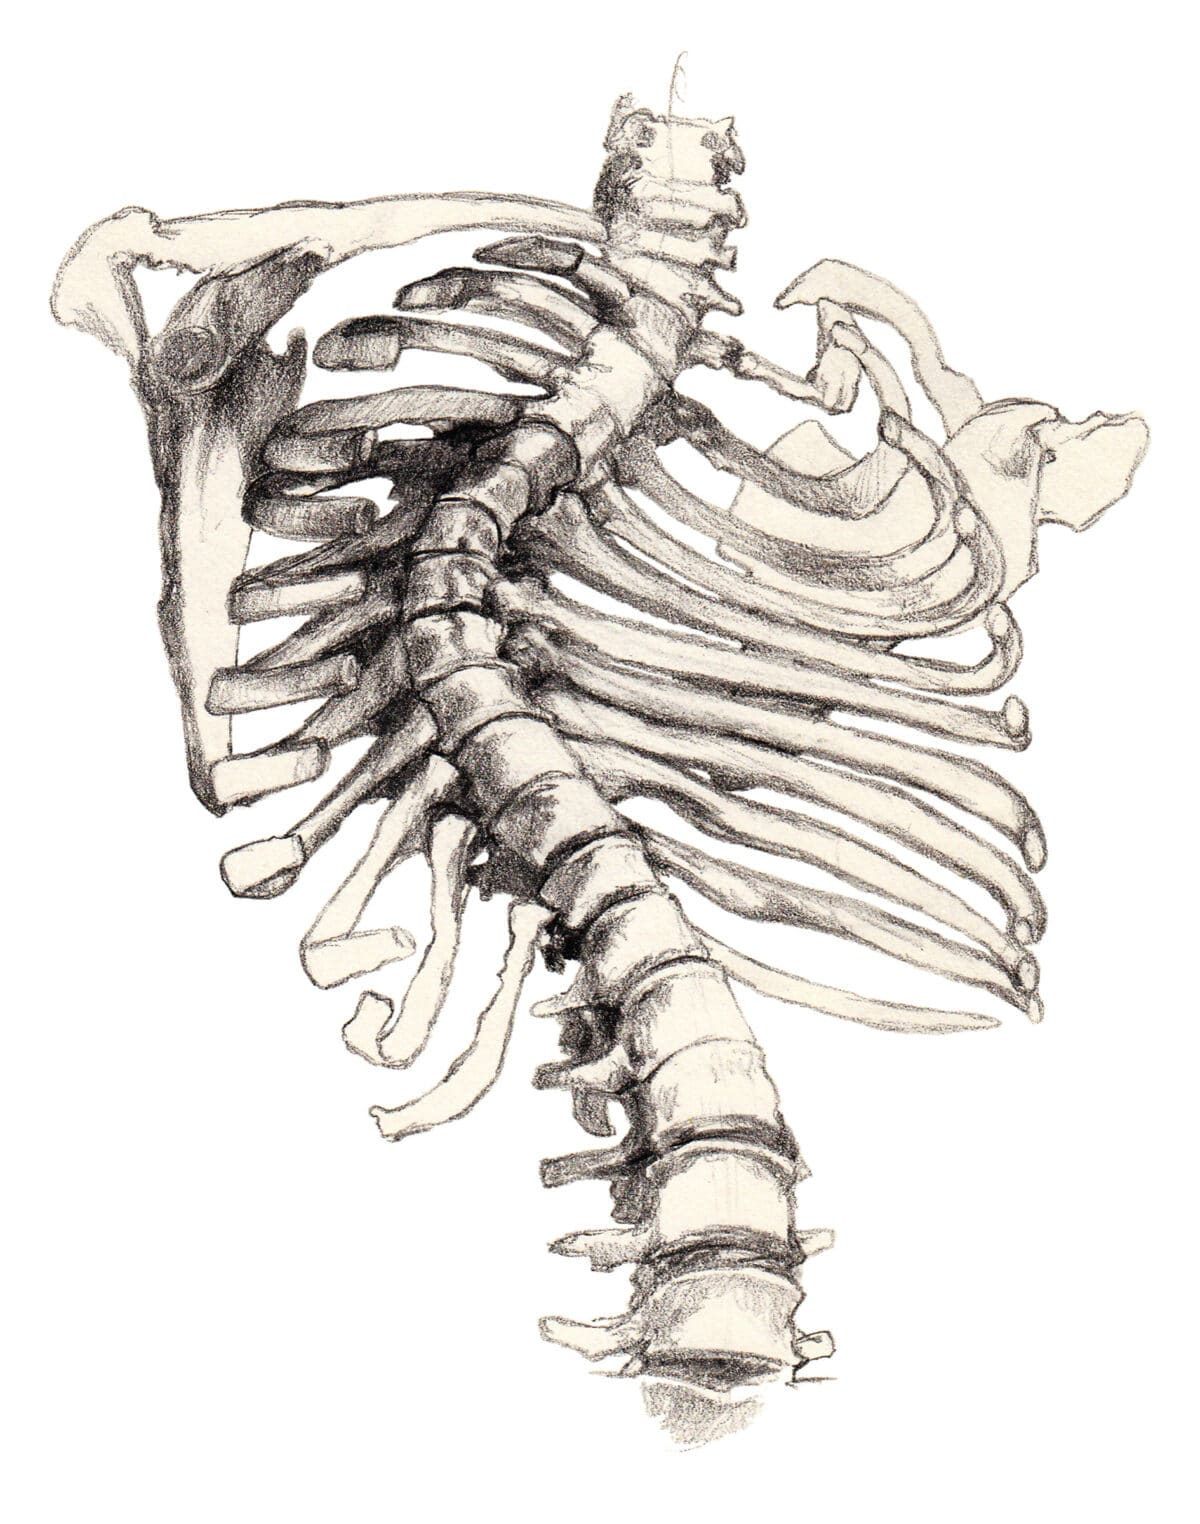 Scoliosis is a common cause of back pain when breathing.